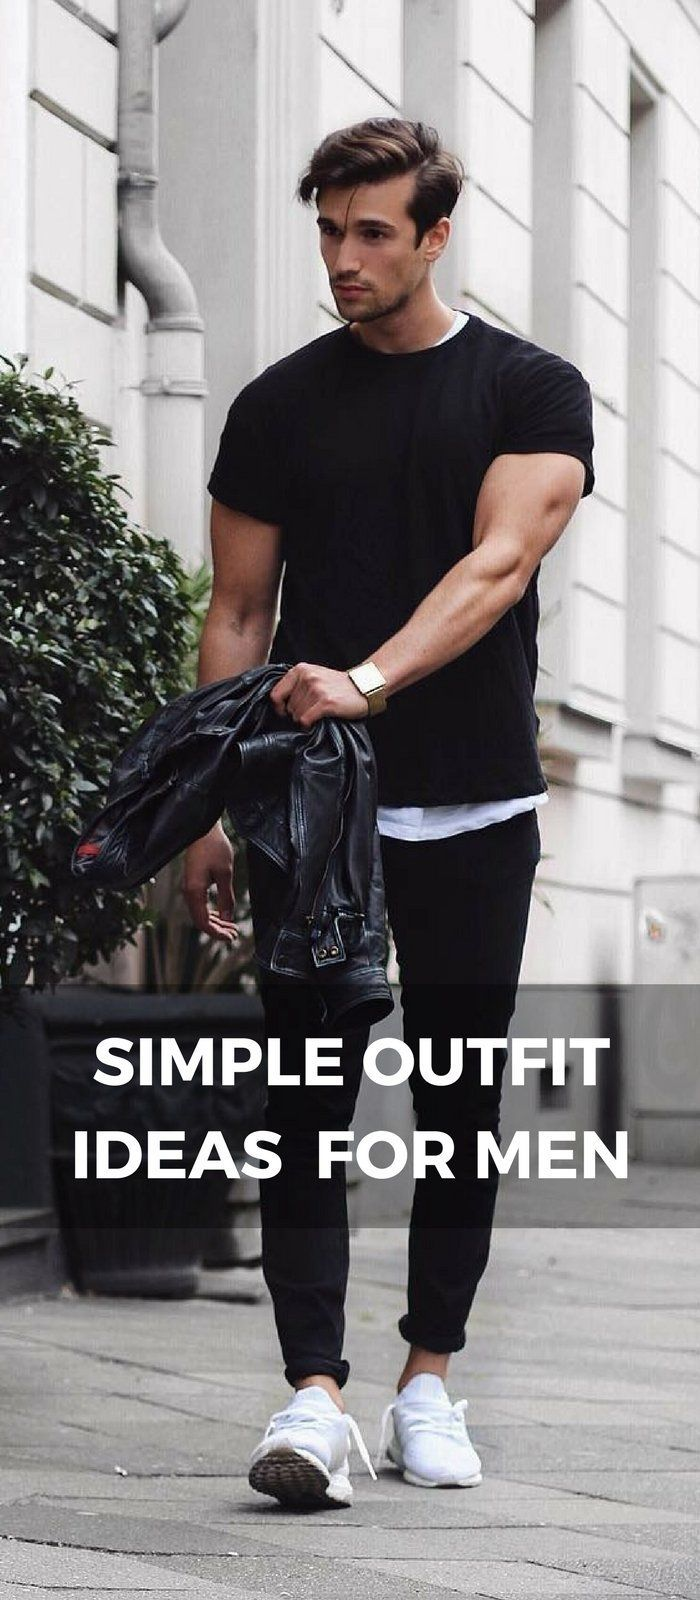 I Bought This Outfit It Looks Amazing On: 10 Everyday Outfit Ideas To Help You Look Amazing In 2020